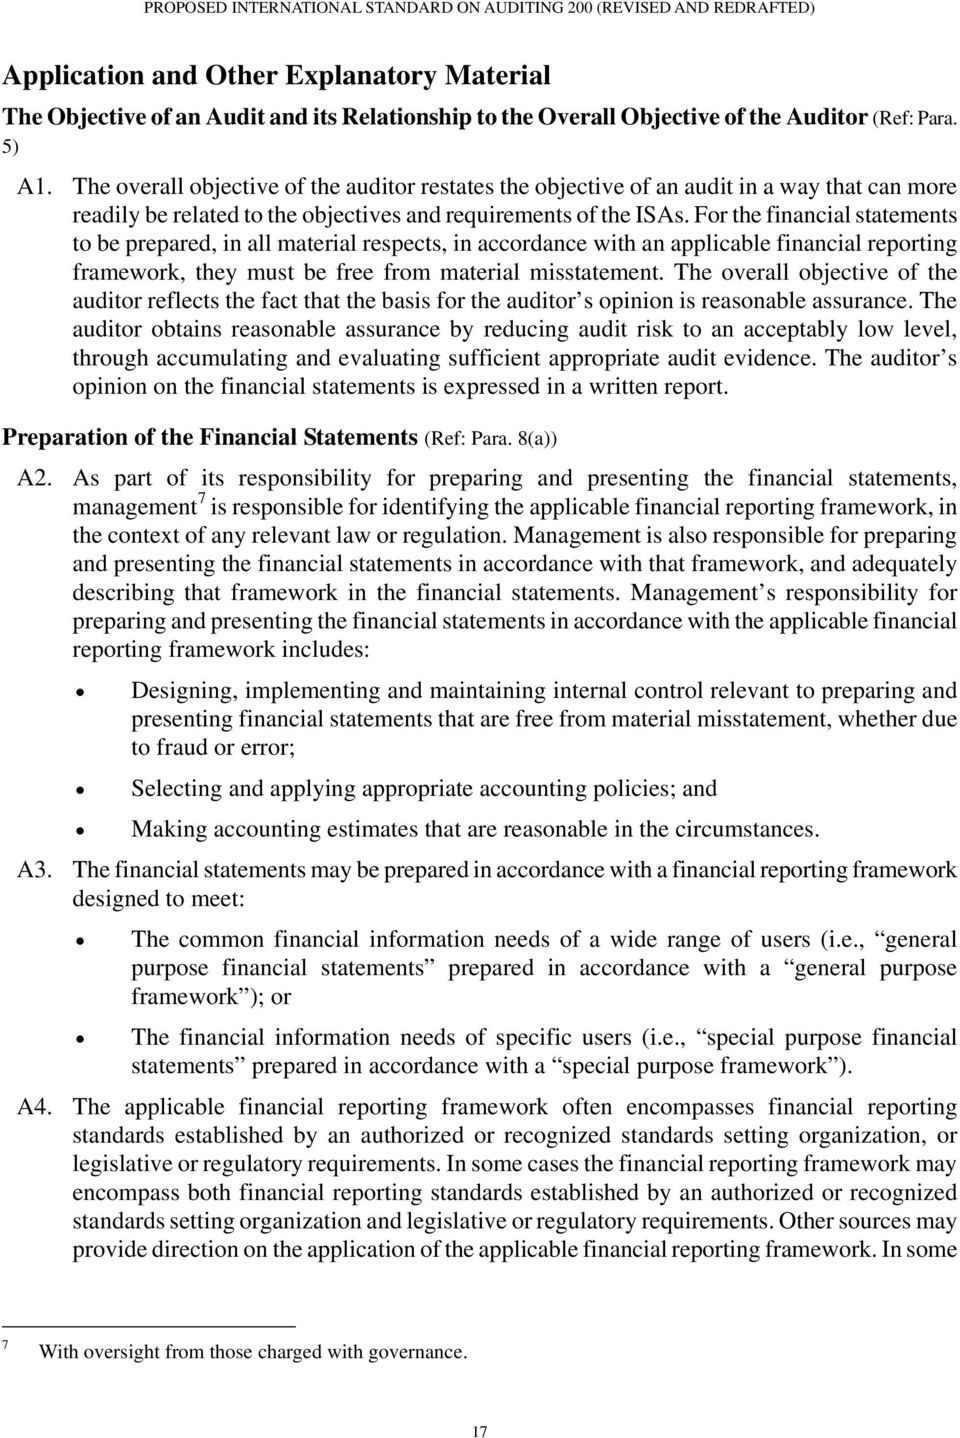 For the financial statements to be prepared, in all material respects, in accordance with an applicable financial reporting framework, they must be free from material misstatement.